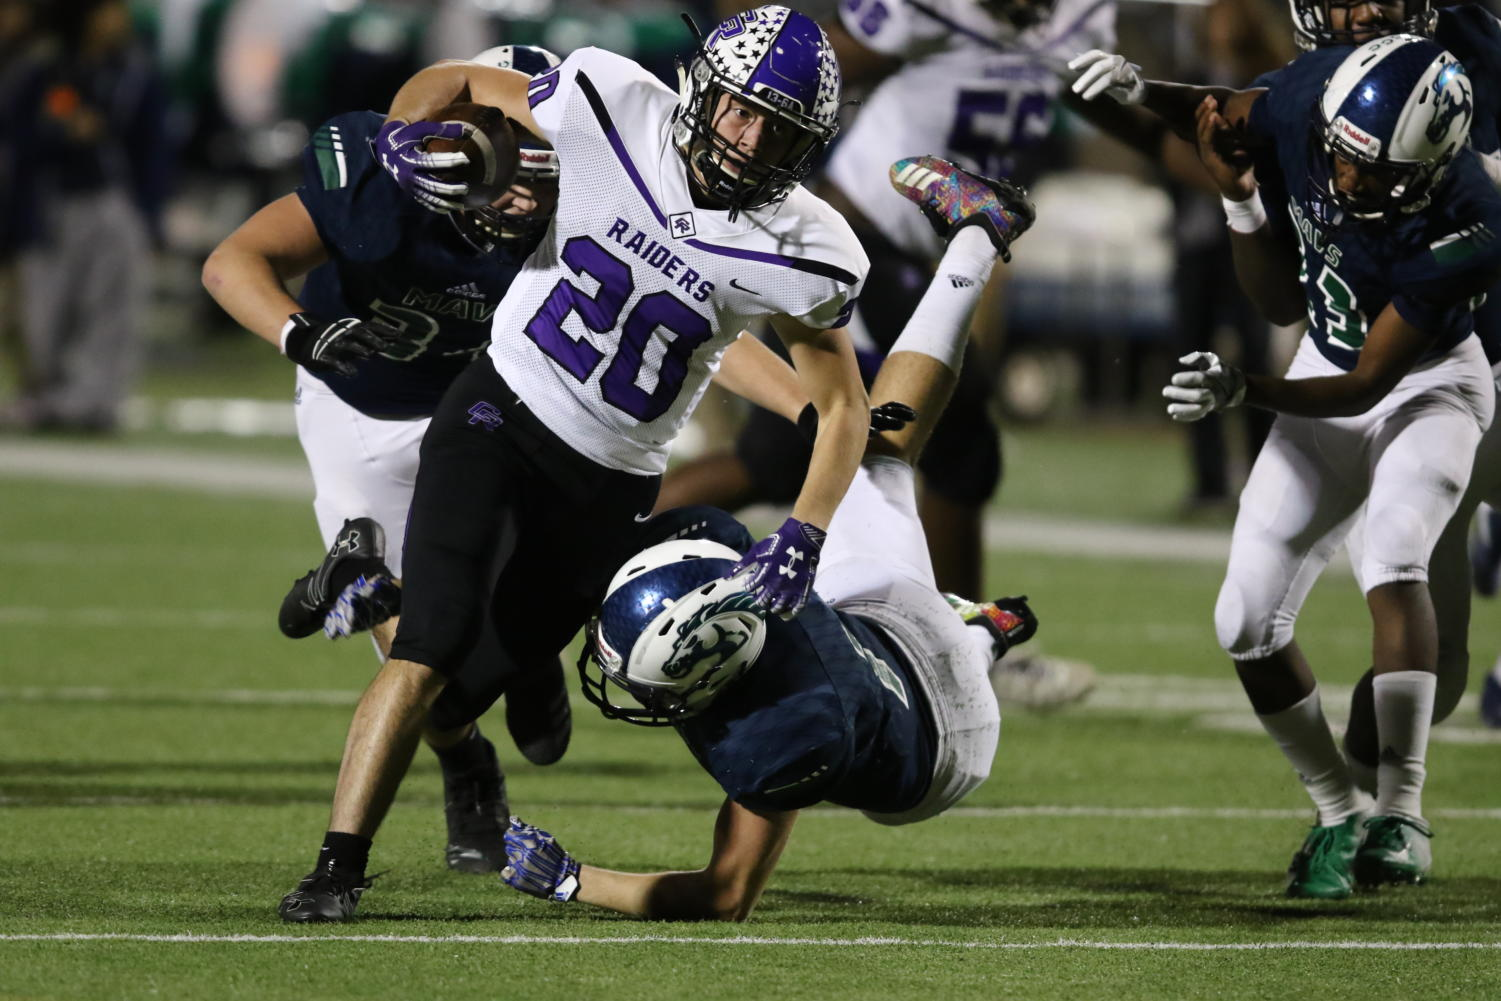 Jed Kennis (12) breaks through the secondary in the game against the McNeil Mavericks.